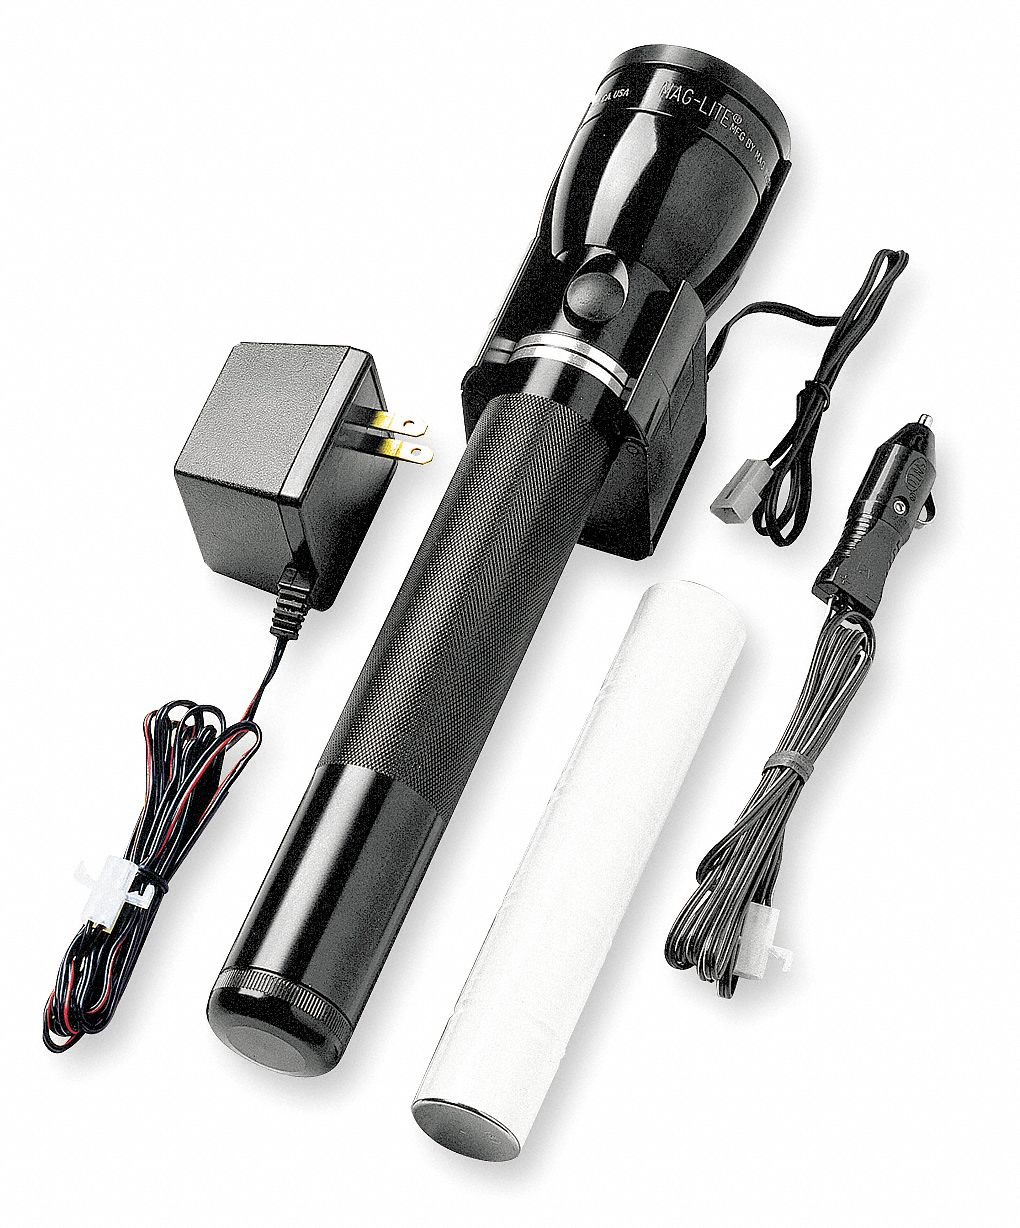 MAG-LITE Rechargeable Flashlight System, Halogen by Mag-Lite RE1019K at Sears.com